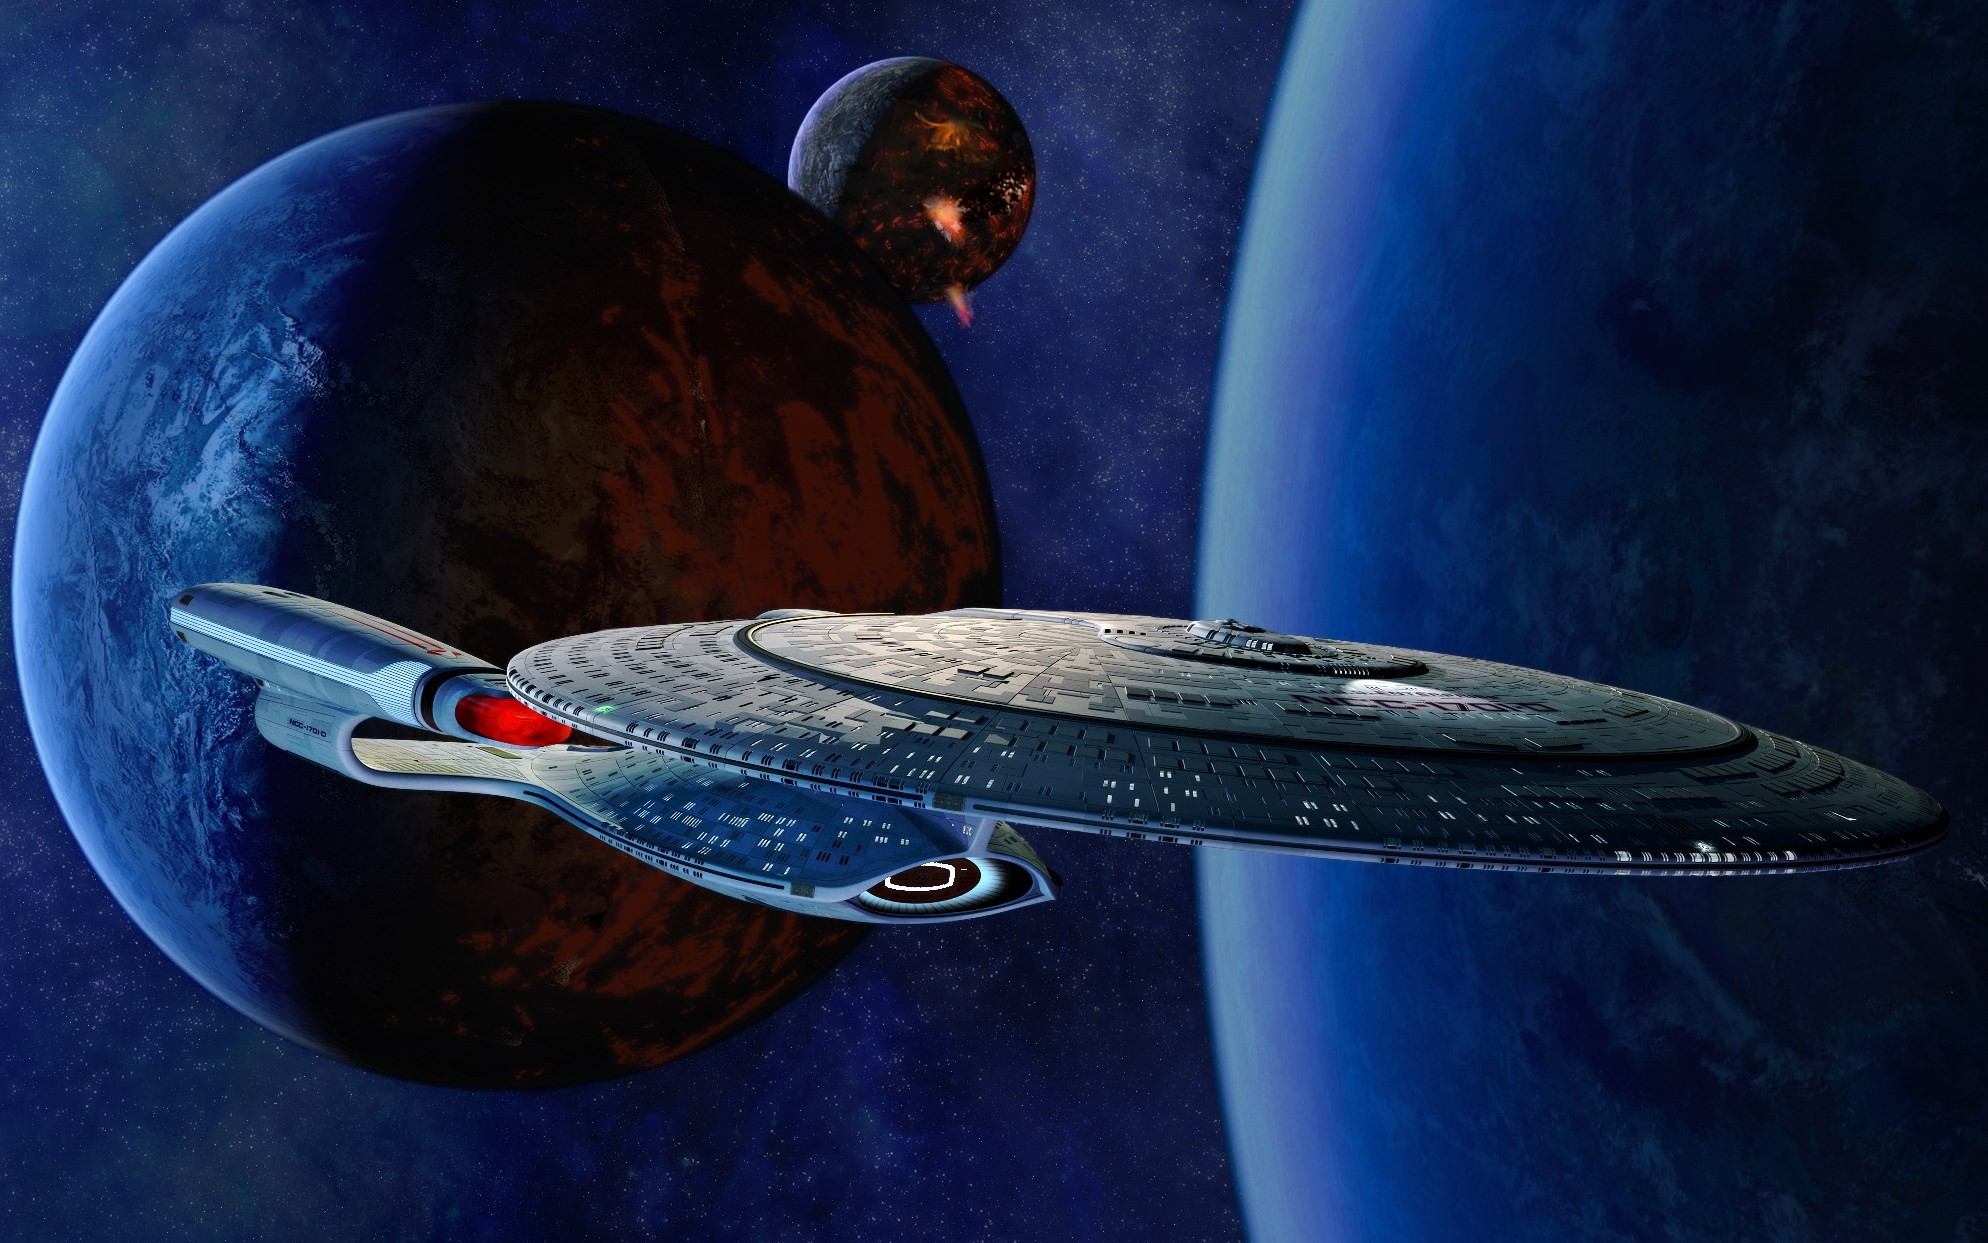 px High Resolution Wallpapers = star trek the next generation  picture by Whitney Bush for